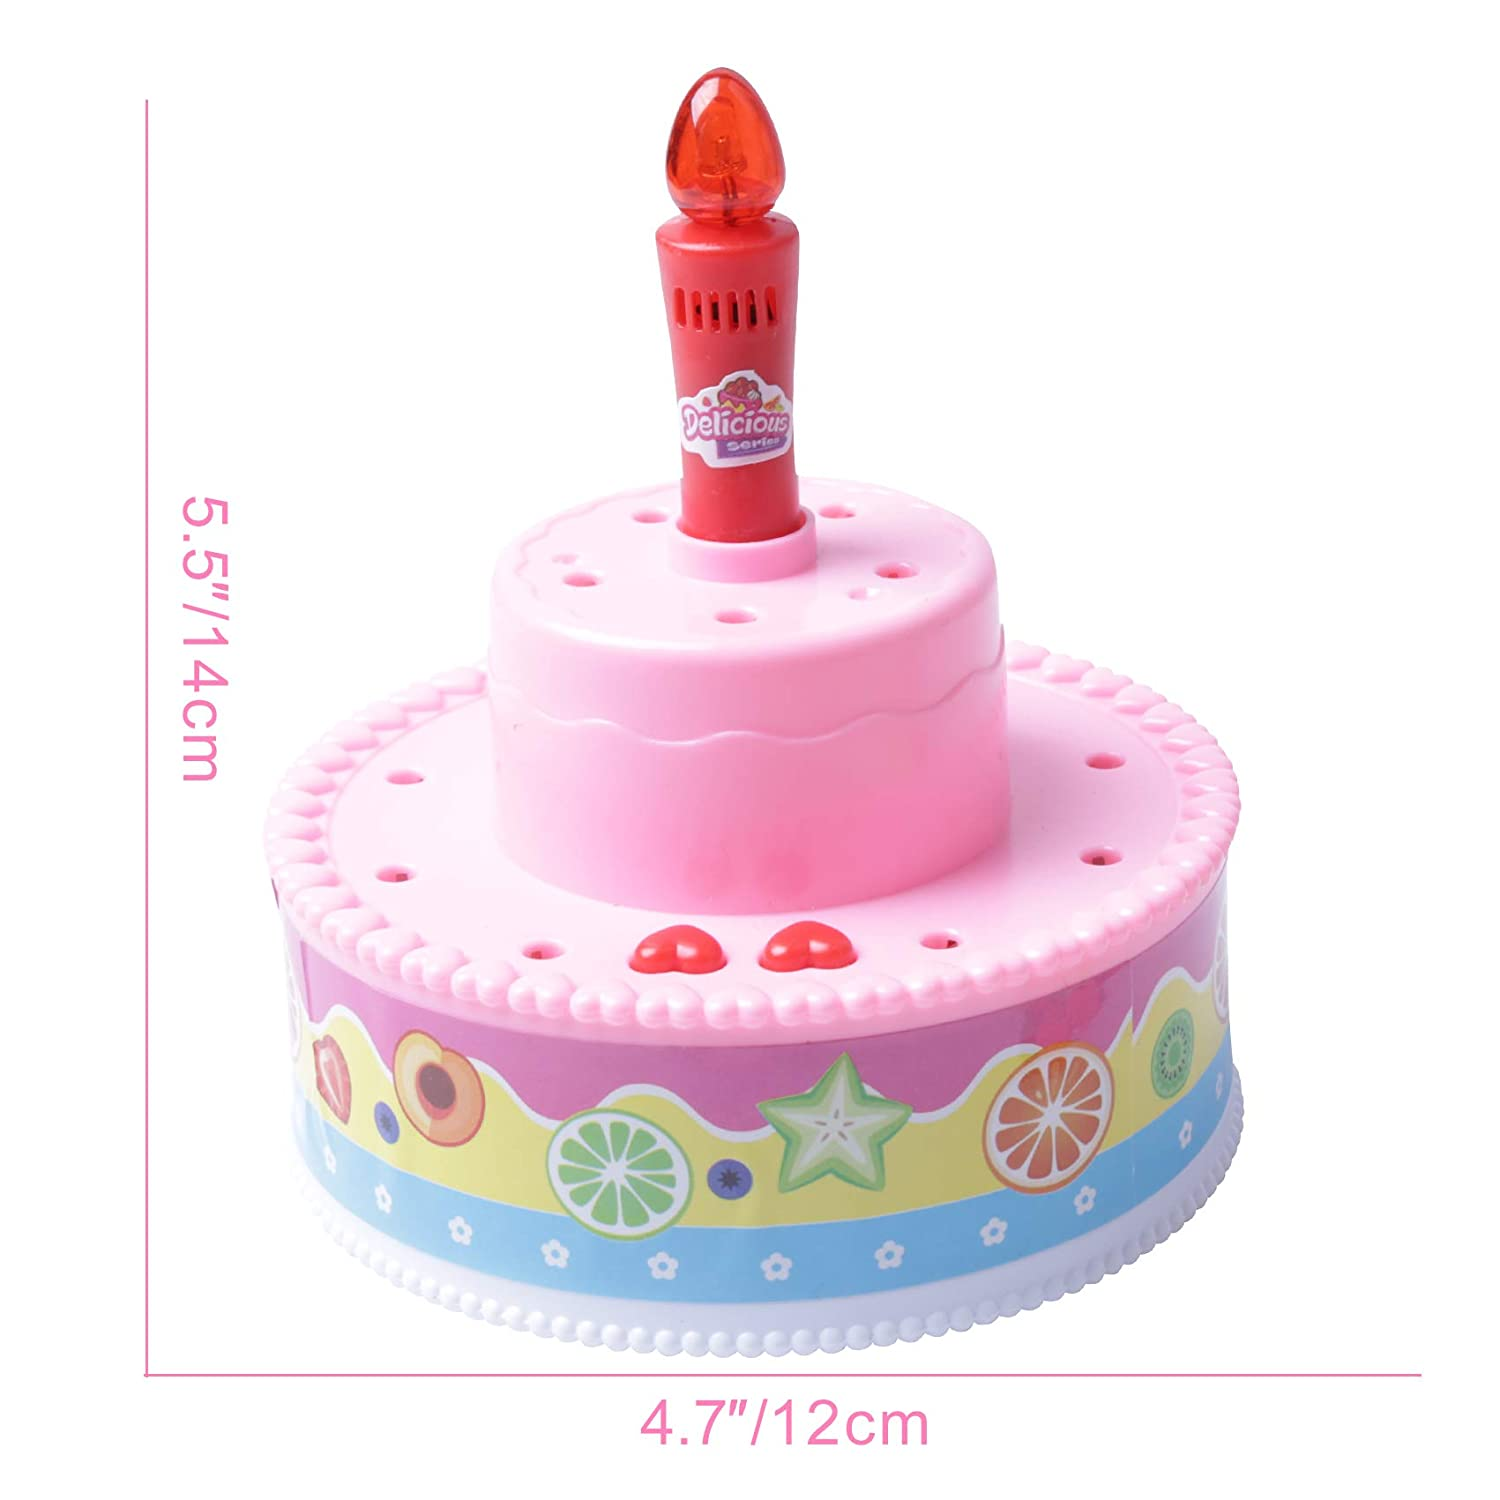 Record and Playback 4.6 Musical Birthday Cake Toy with Light Up Candle and Birthday Song Blow Out Candle with Applause Sound Pretend Play for Kids Pink